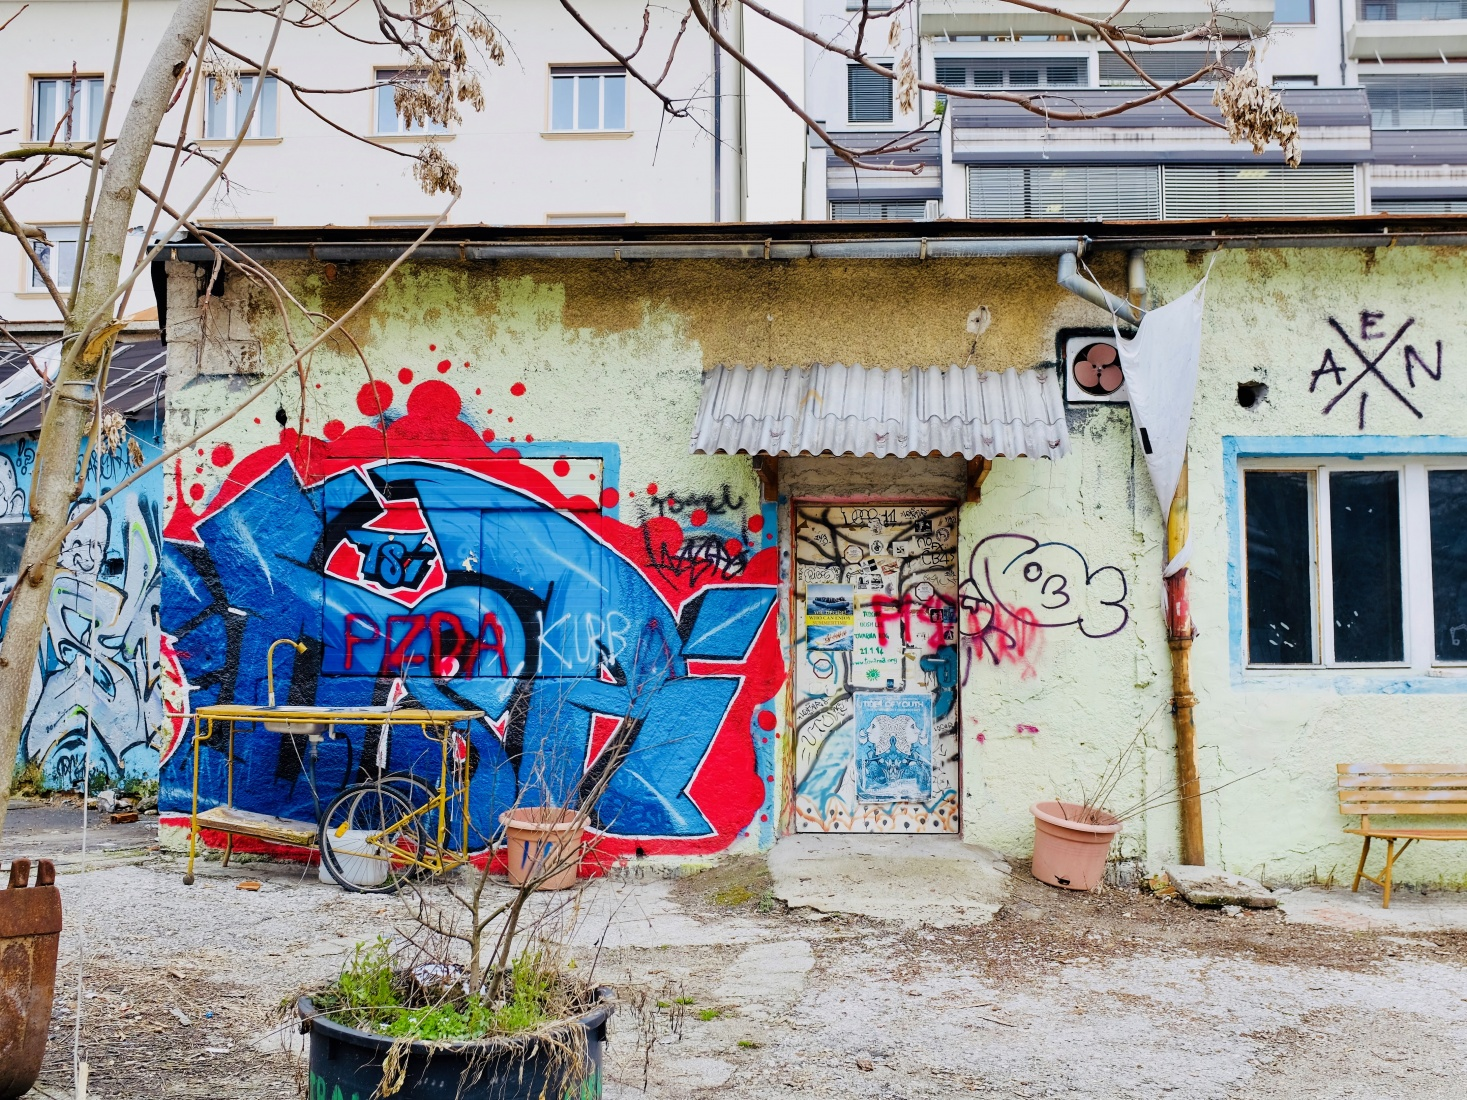 Exterior of the Rog squat, covered with graffiti and street art but keeping a secret about student and youth activities inside, in Ljubljana, Slovenia.